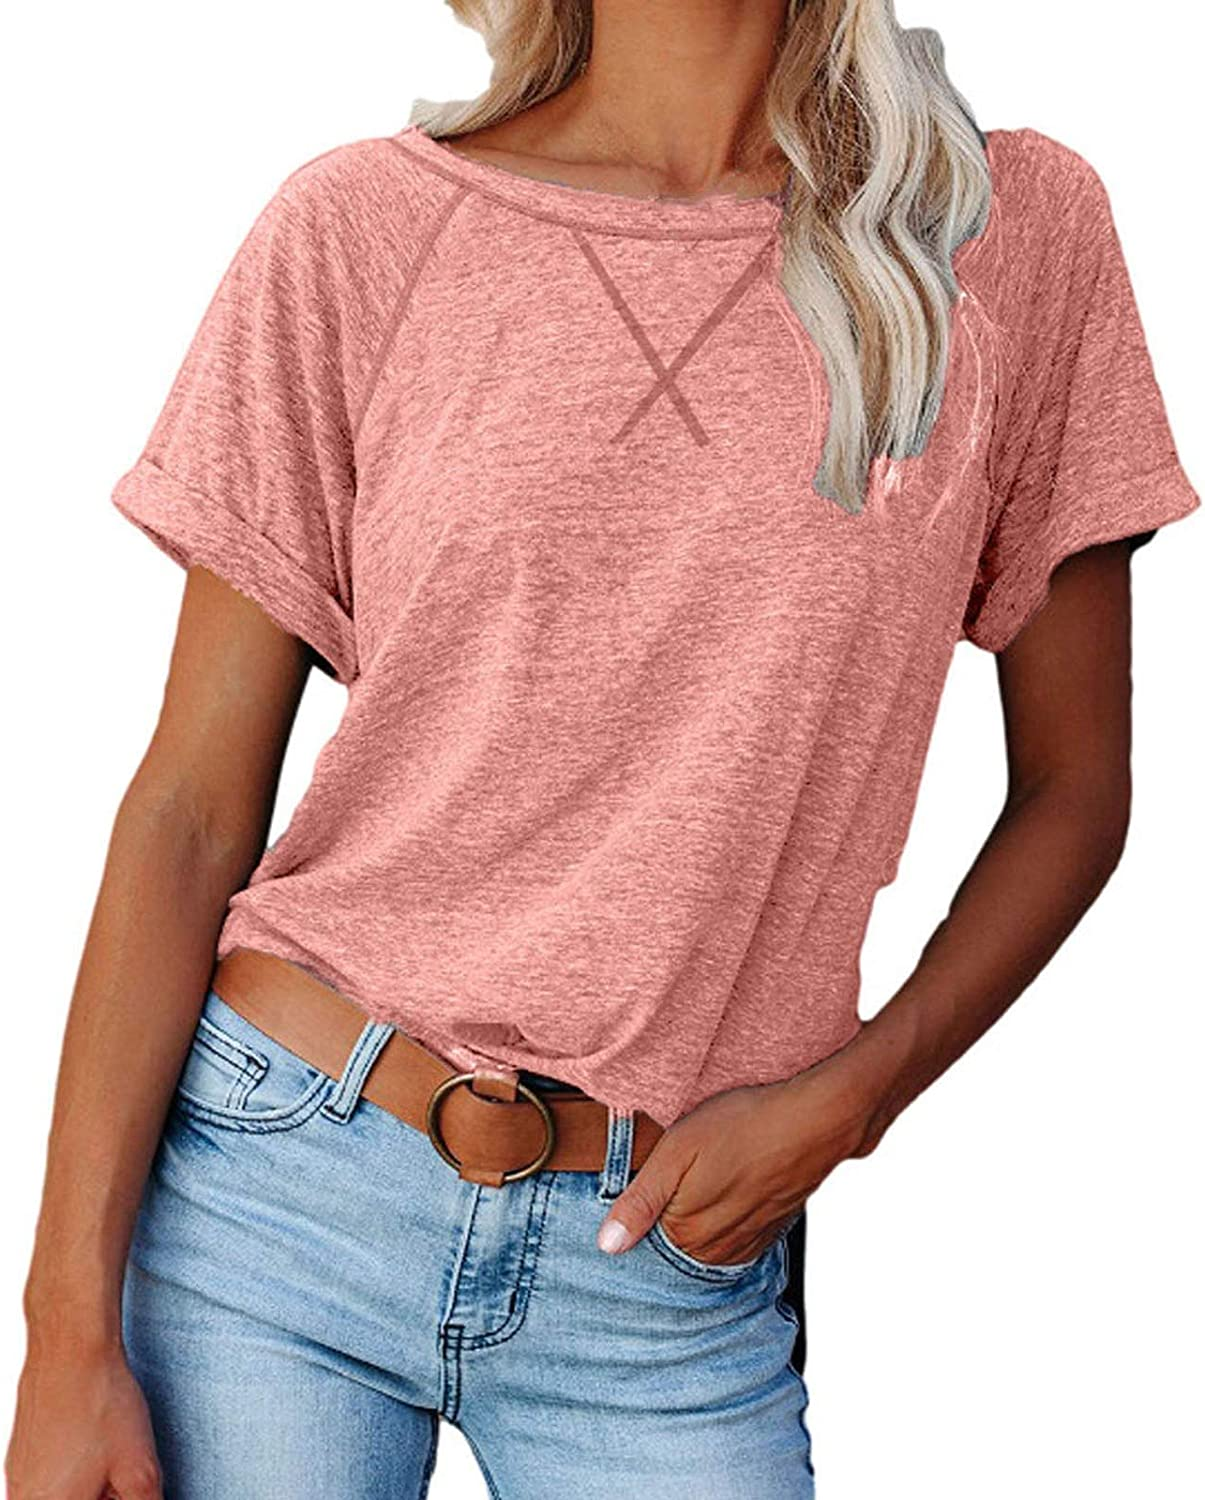 Women's Summer Solid Color Workout Tops and Blouses Round Collar Short Sleeve Basic T-Shirts Casual Comfy Wear to Work